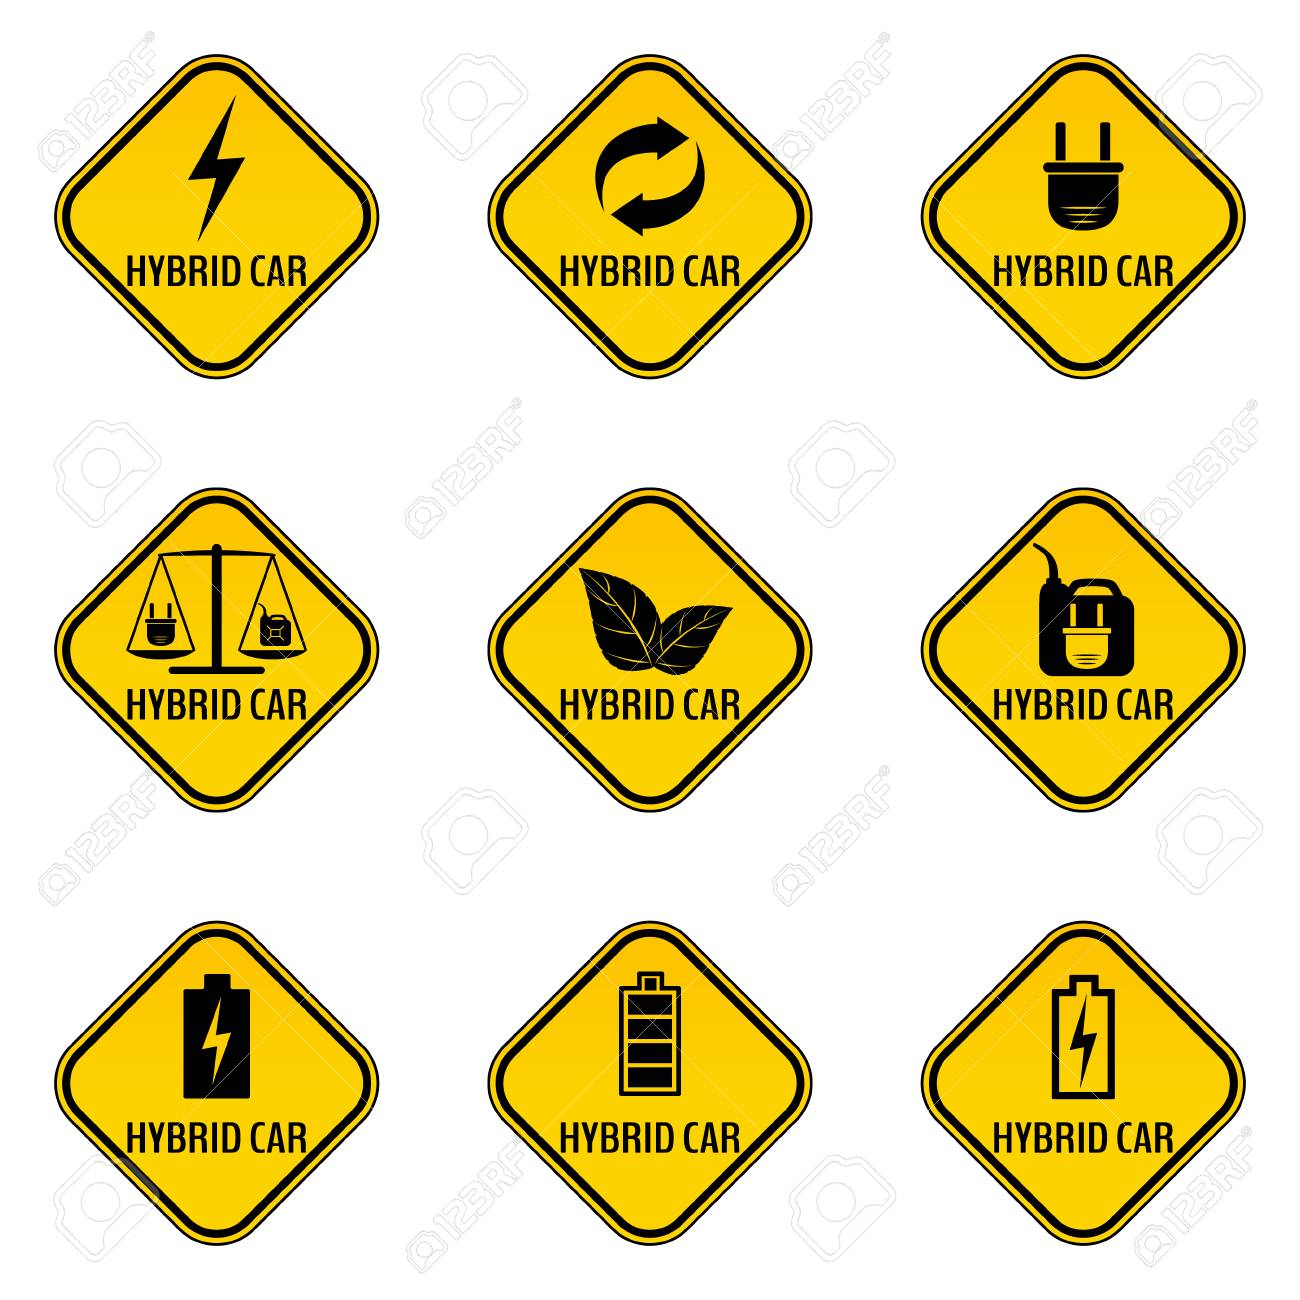 Set Of Hybrid Car Caution Stickers Save Energy Automobile Warning